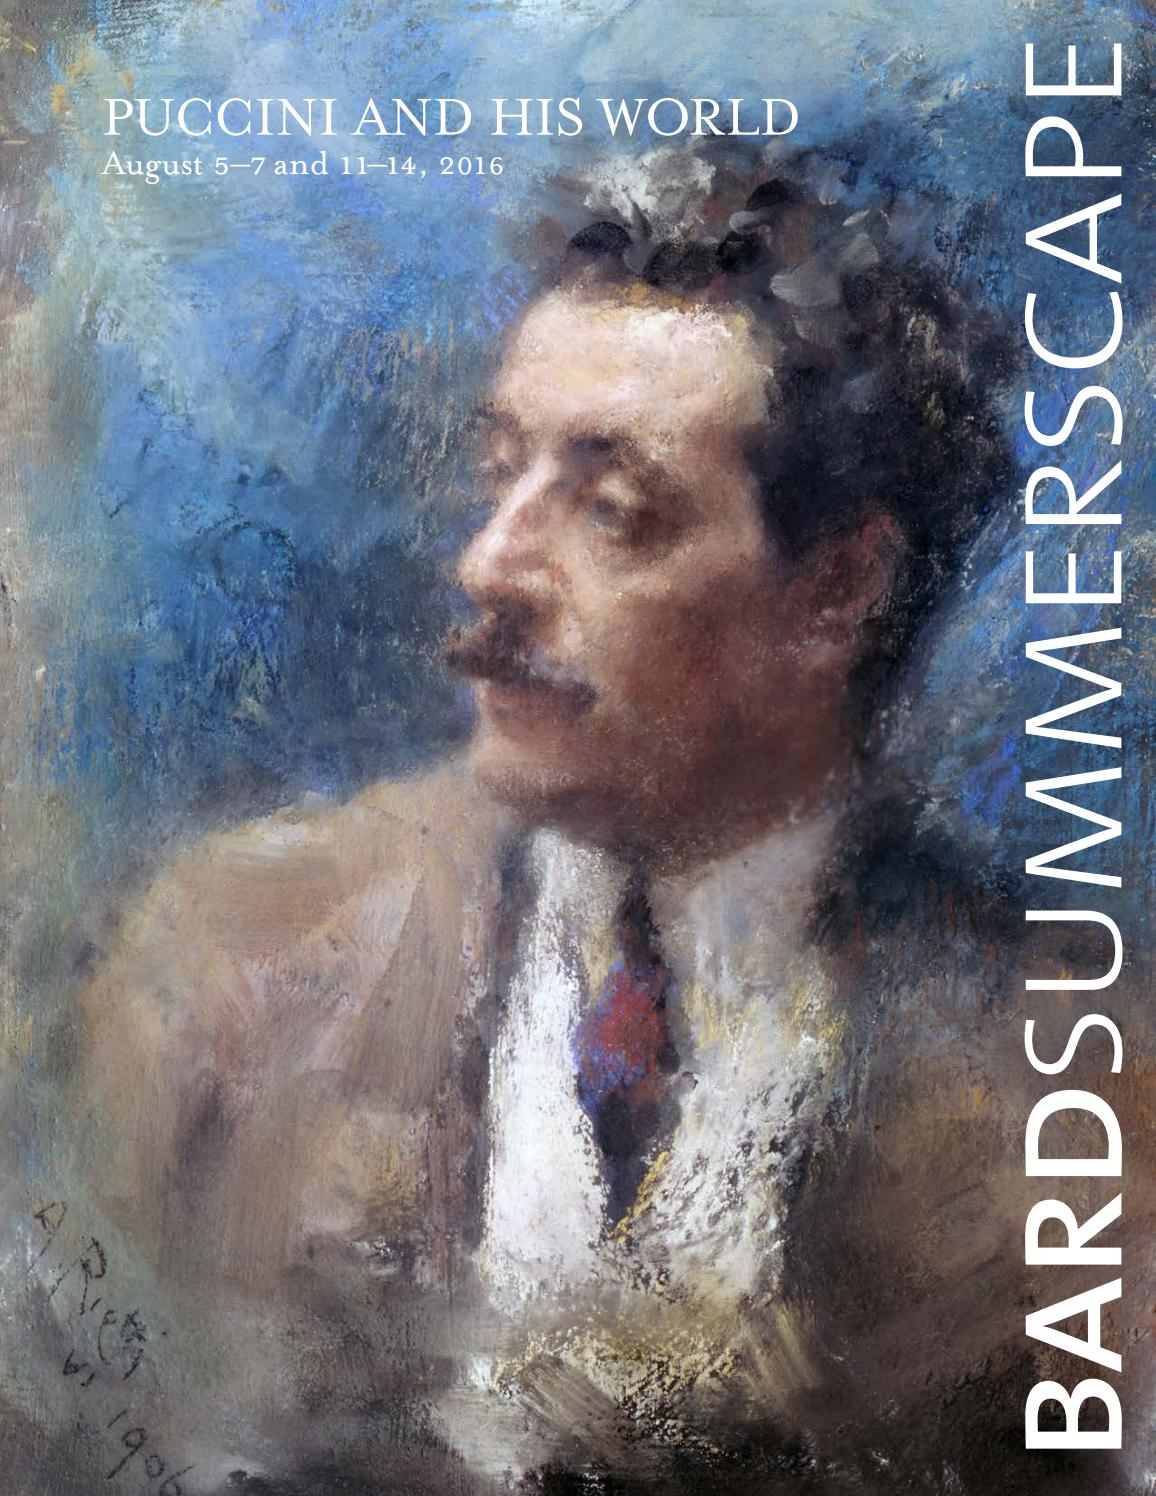 Bard Music Festival 2016: Puccini and His World by The Richard B. Fisher  Center for the Performing Arts at Bard College - issuu